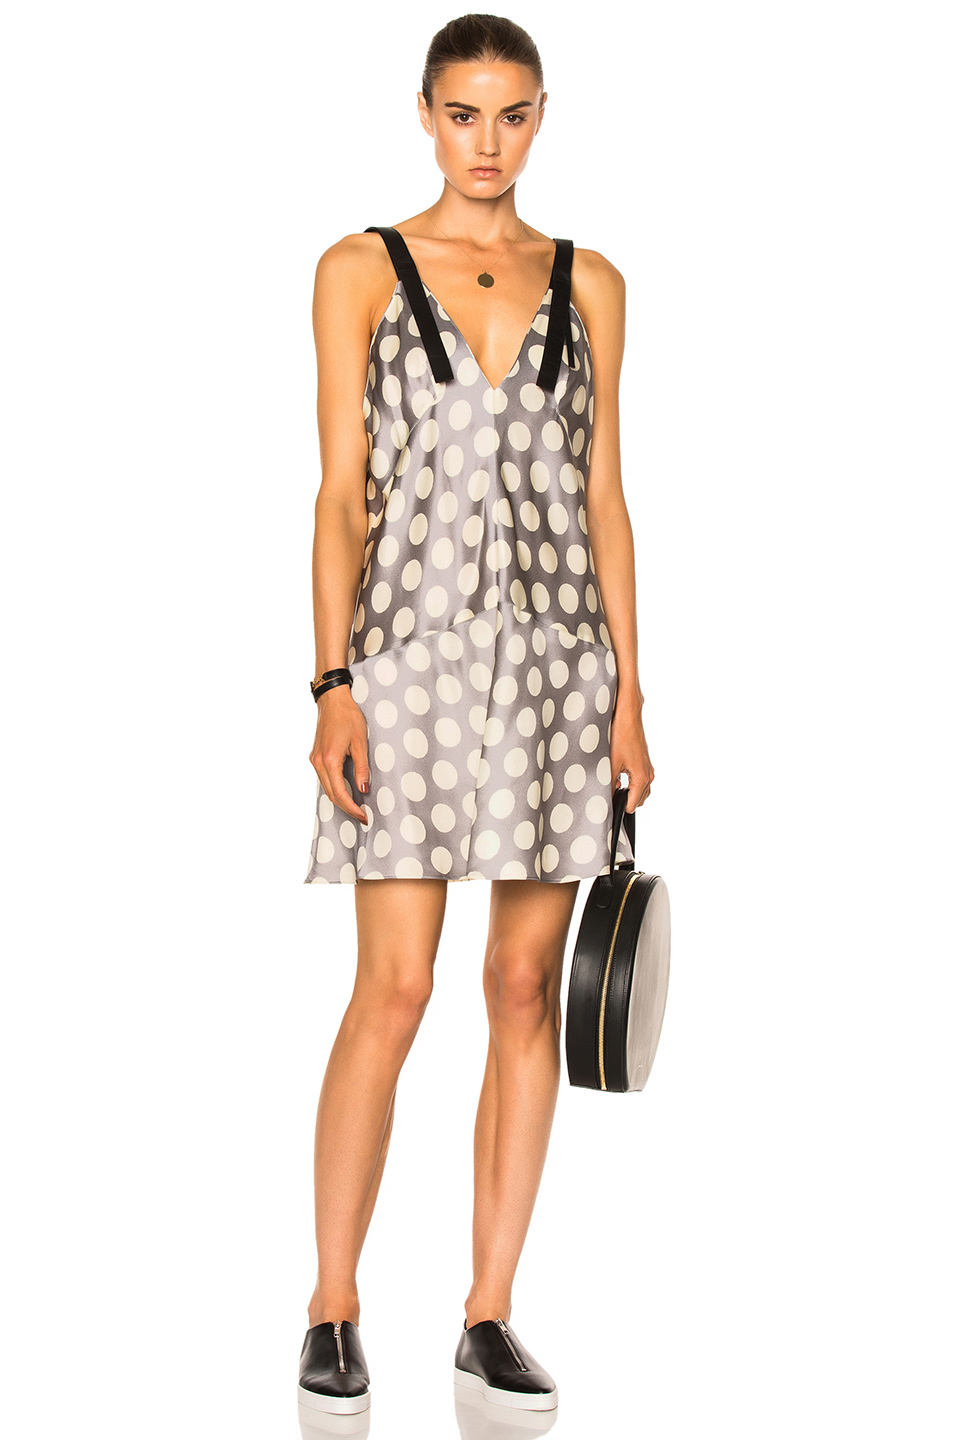 Calvin Klein Collection Knox Multi Print Crew Neck Dress in Gray,Metallics,Neutrals,Polka Dots